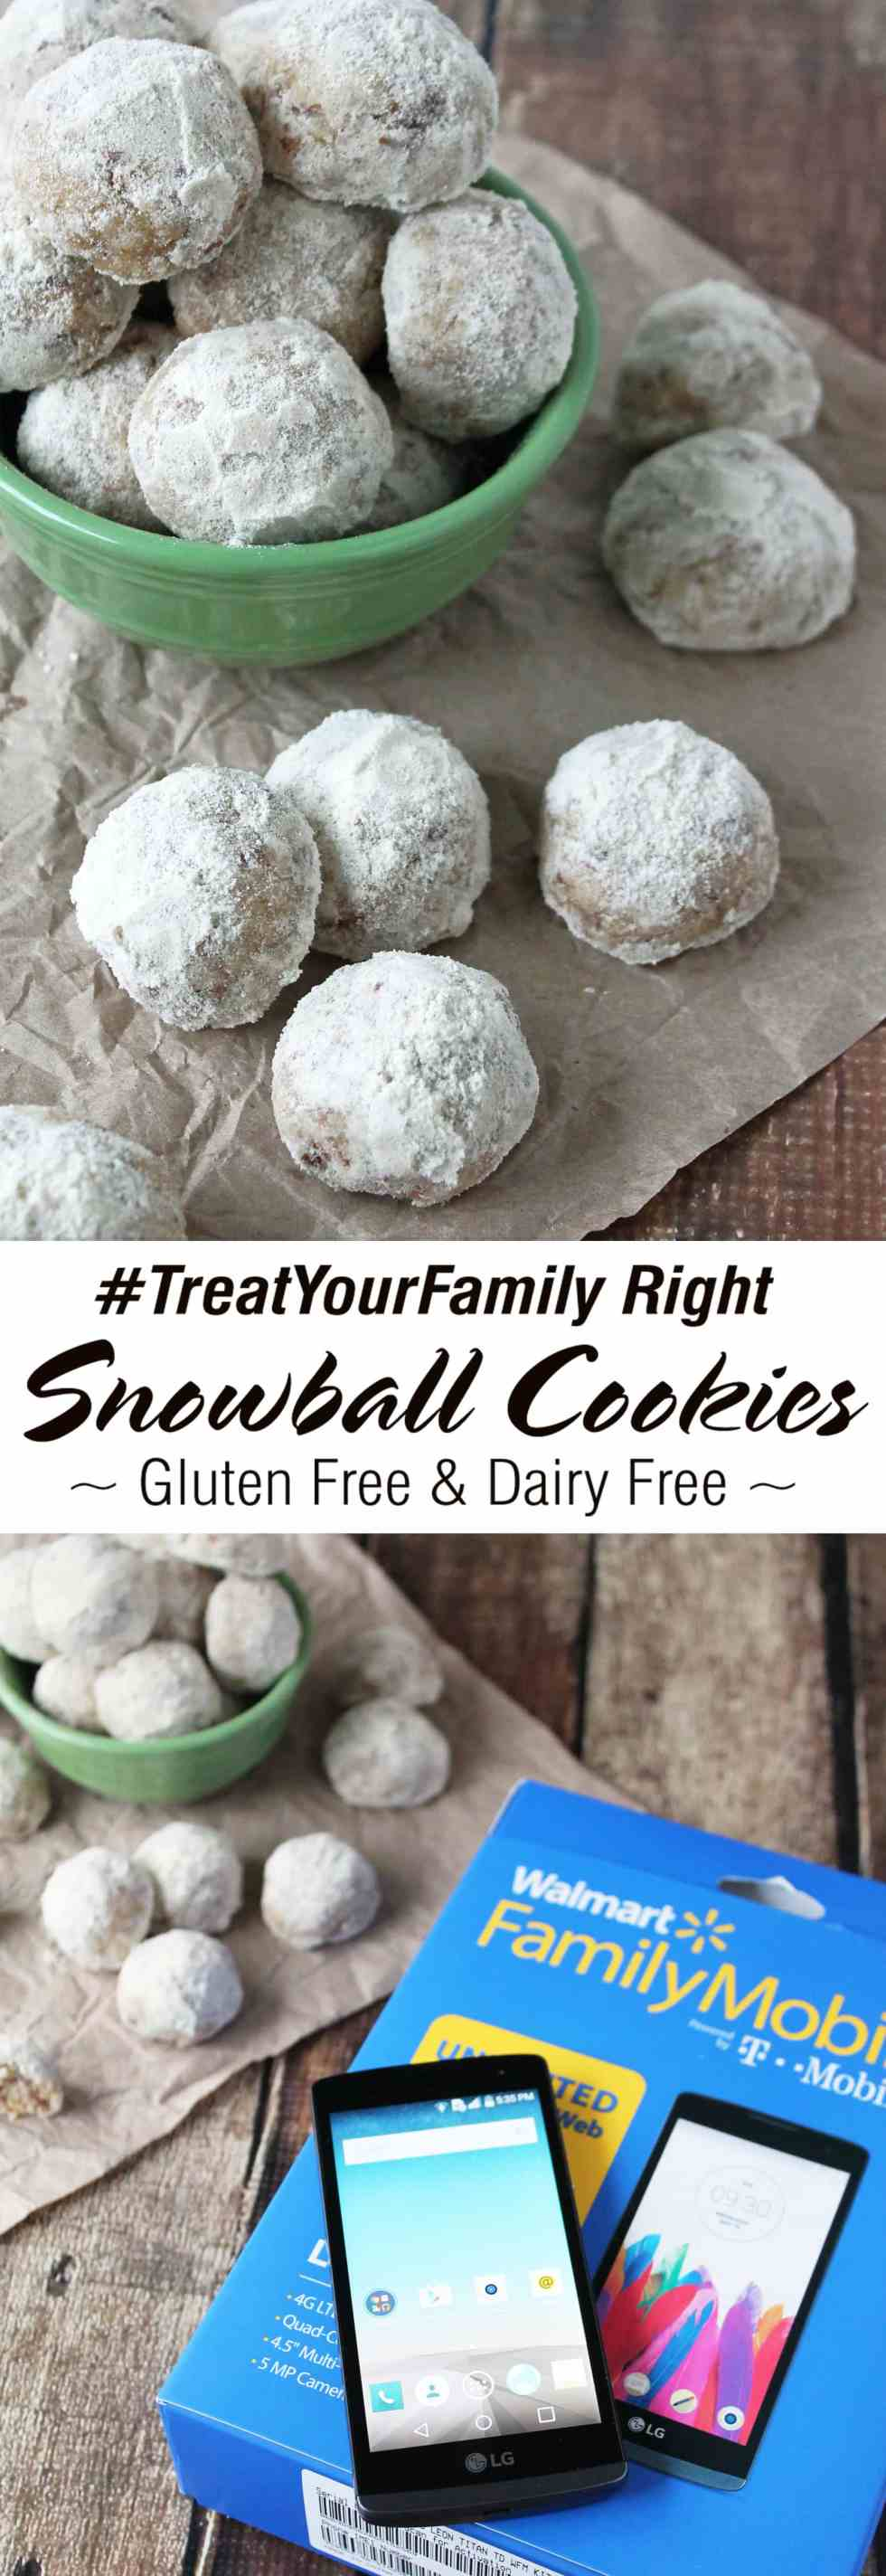 #TreatYourFamily-Right-Snowball-Cookies